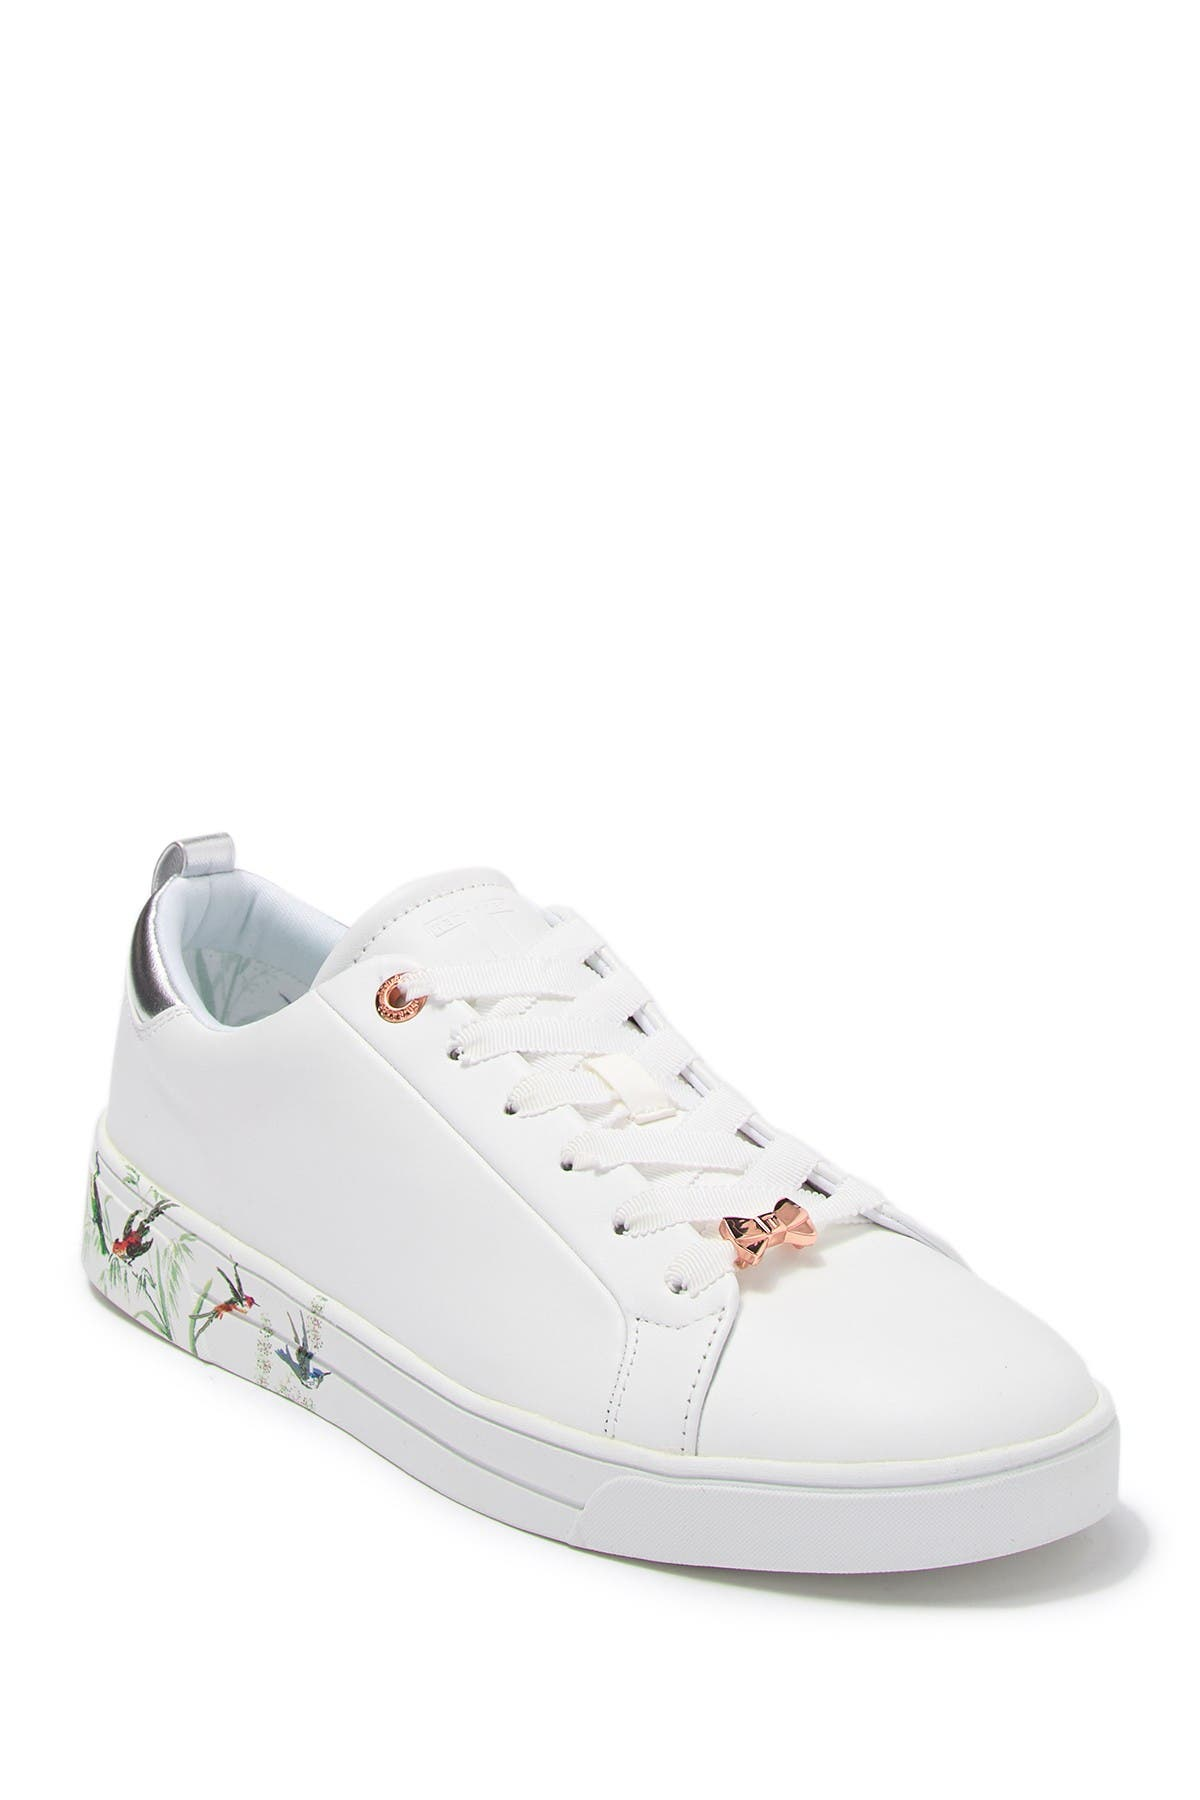 Image of Ted Baker London Roully Printed Sole Sneaker